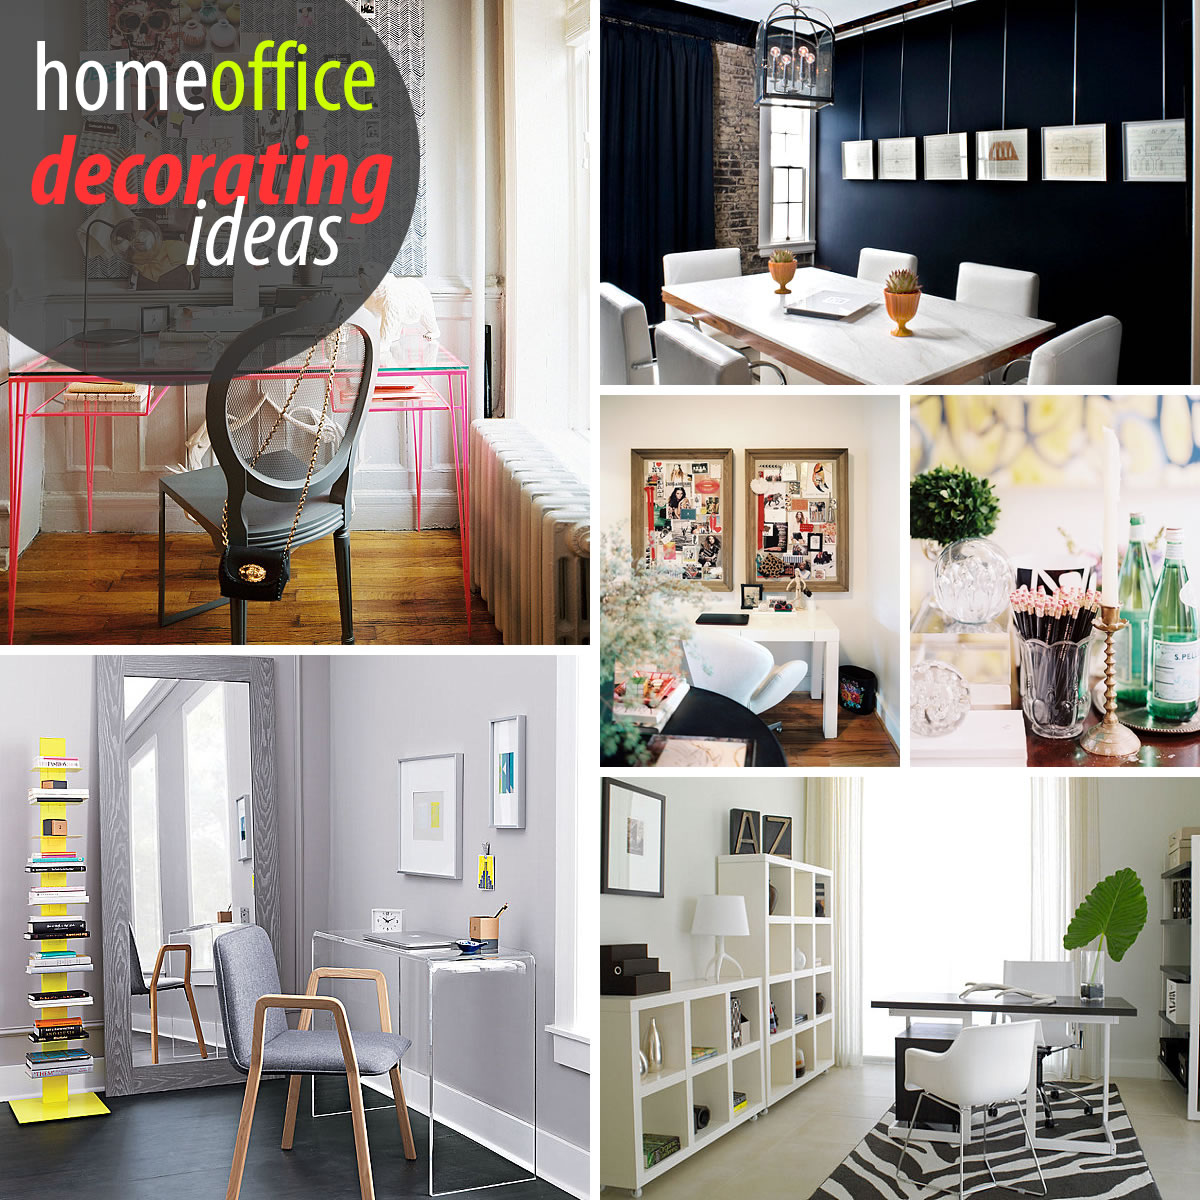 Creative home office decorating ideas - Home office decor ideas ...